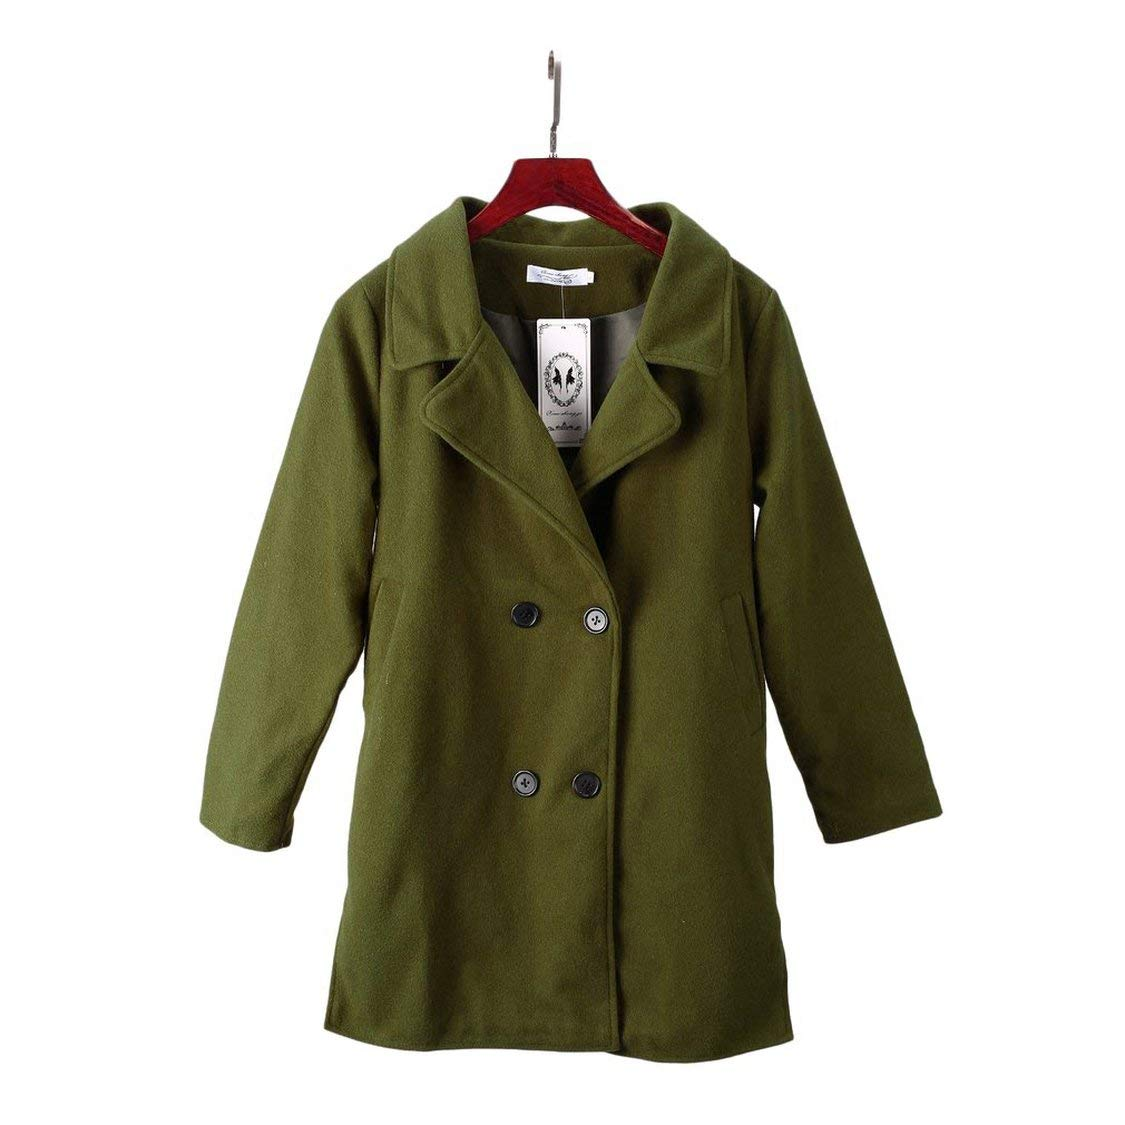 Female Double-breasted Overcoat Long Sleeve Turn-down Collar Solid Color Coat Outwear Korean Style Long Slim-fit - Army Green XL